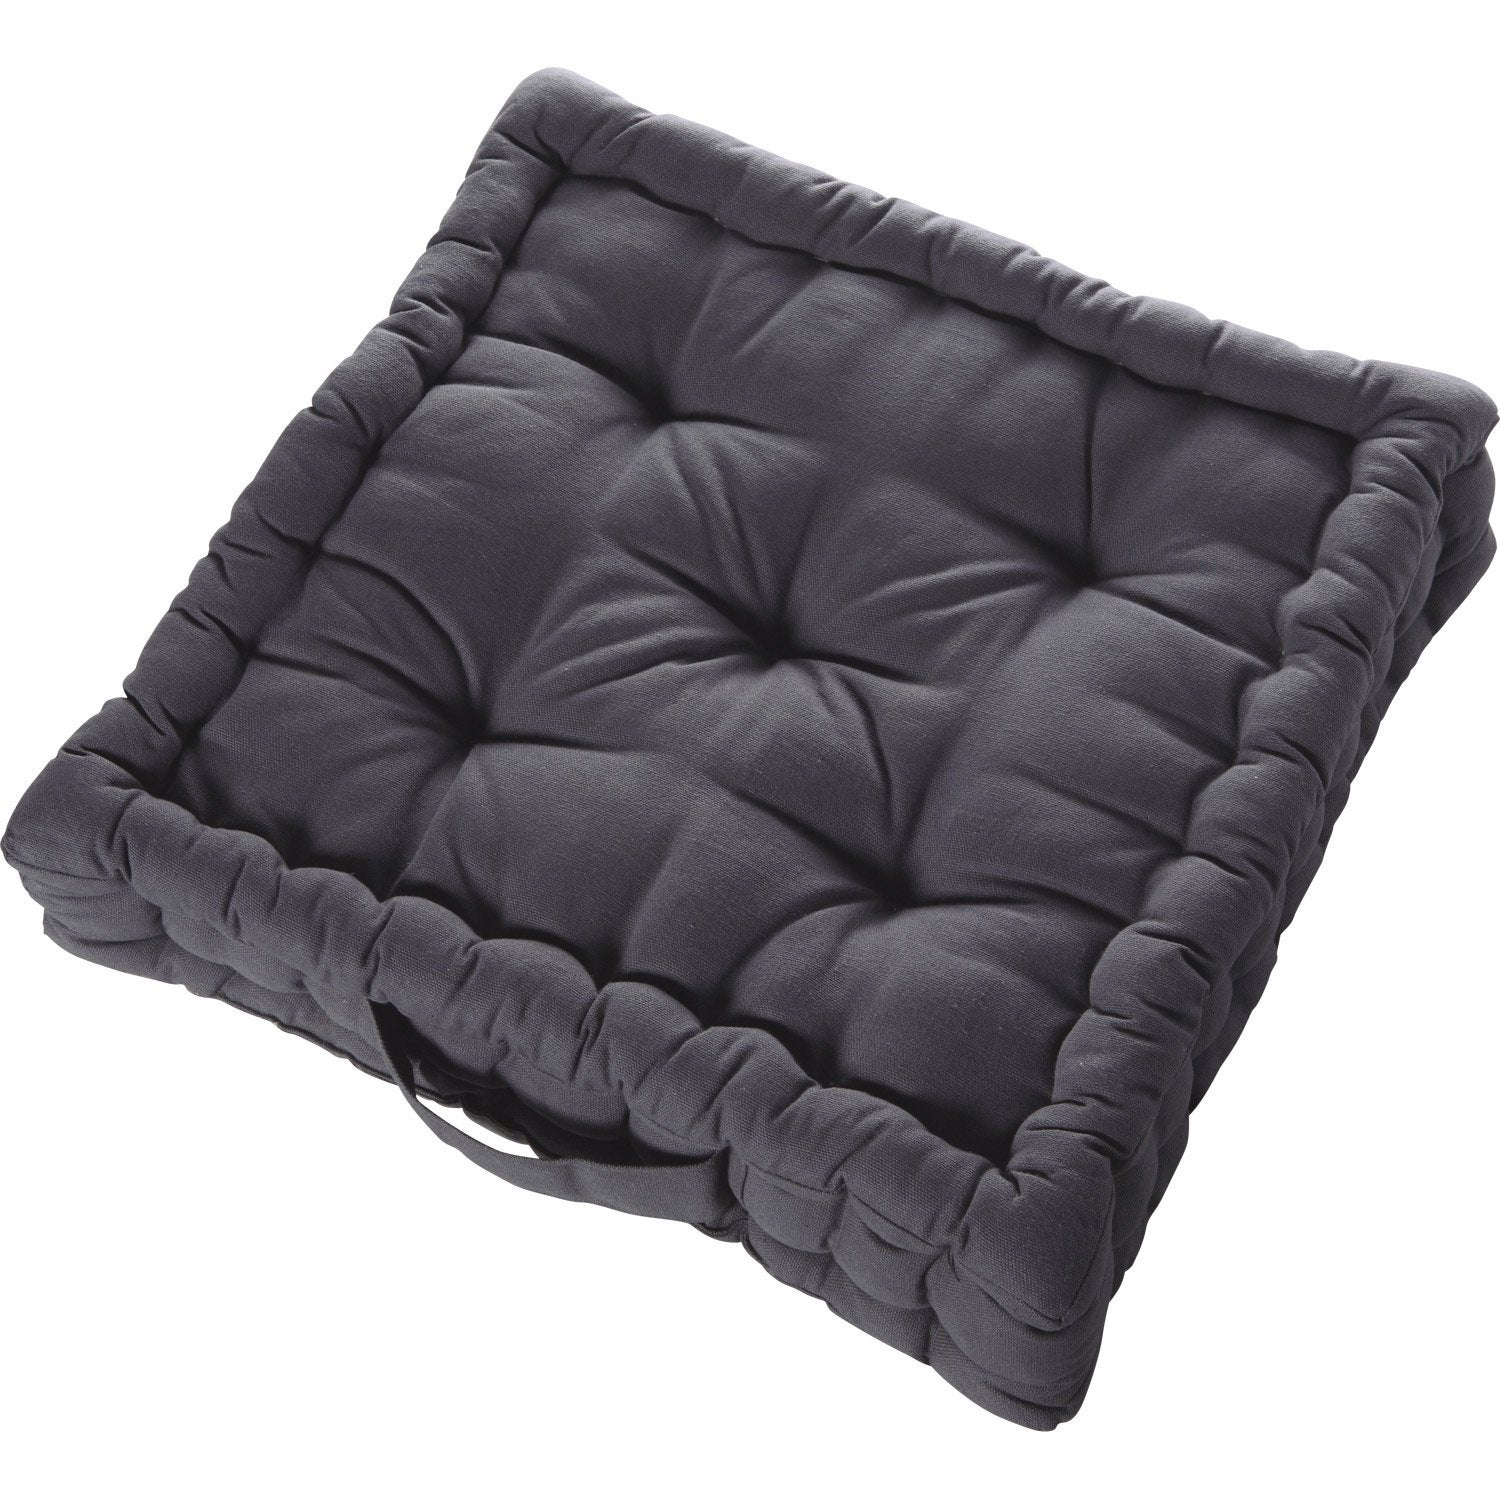 coussin de sol cl a inspire gris galet n 1 x x cm leroy merlin. Black Bedroom Furniture Sets. Home Design Ideas